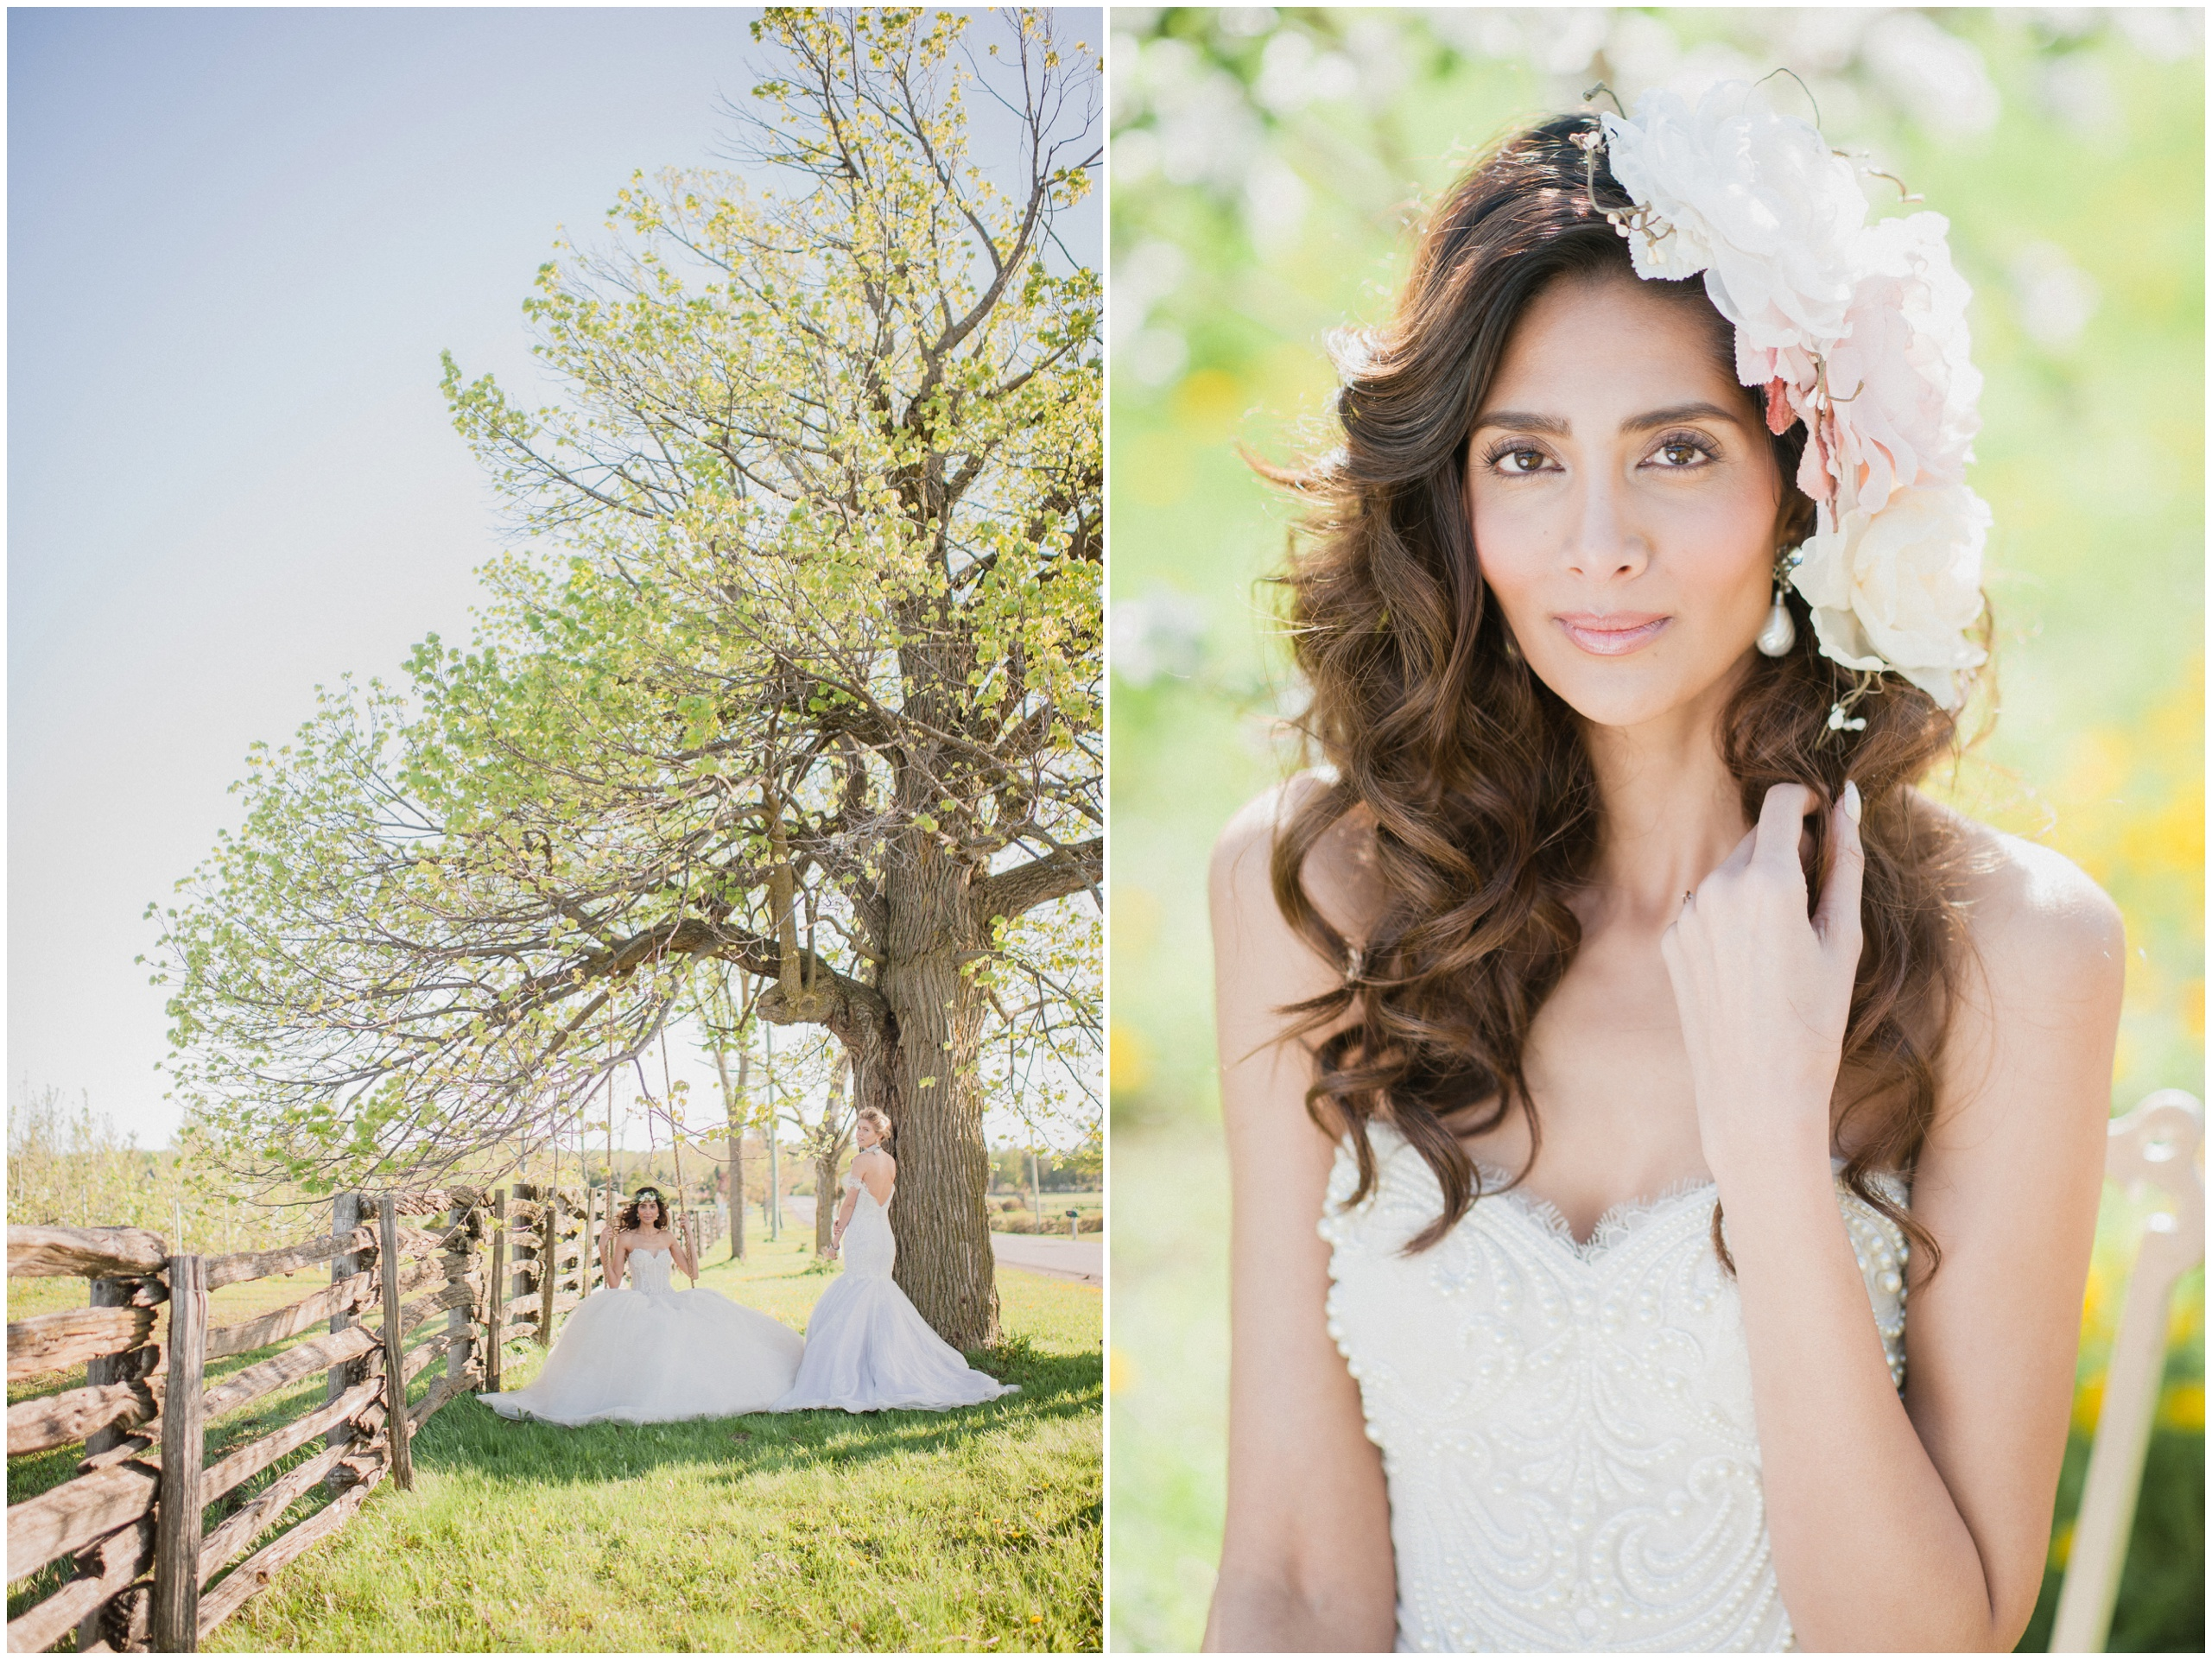 Wedding Inspiration: Bride wearing flower crown and Ines Di Santo gown on rustic wooden swing.